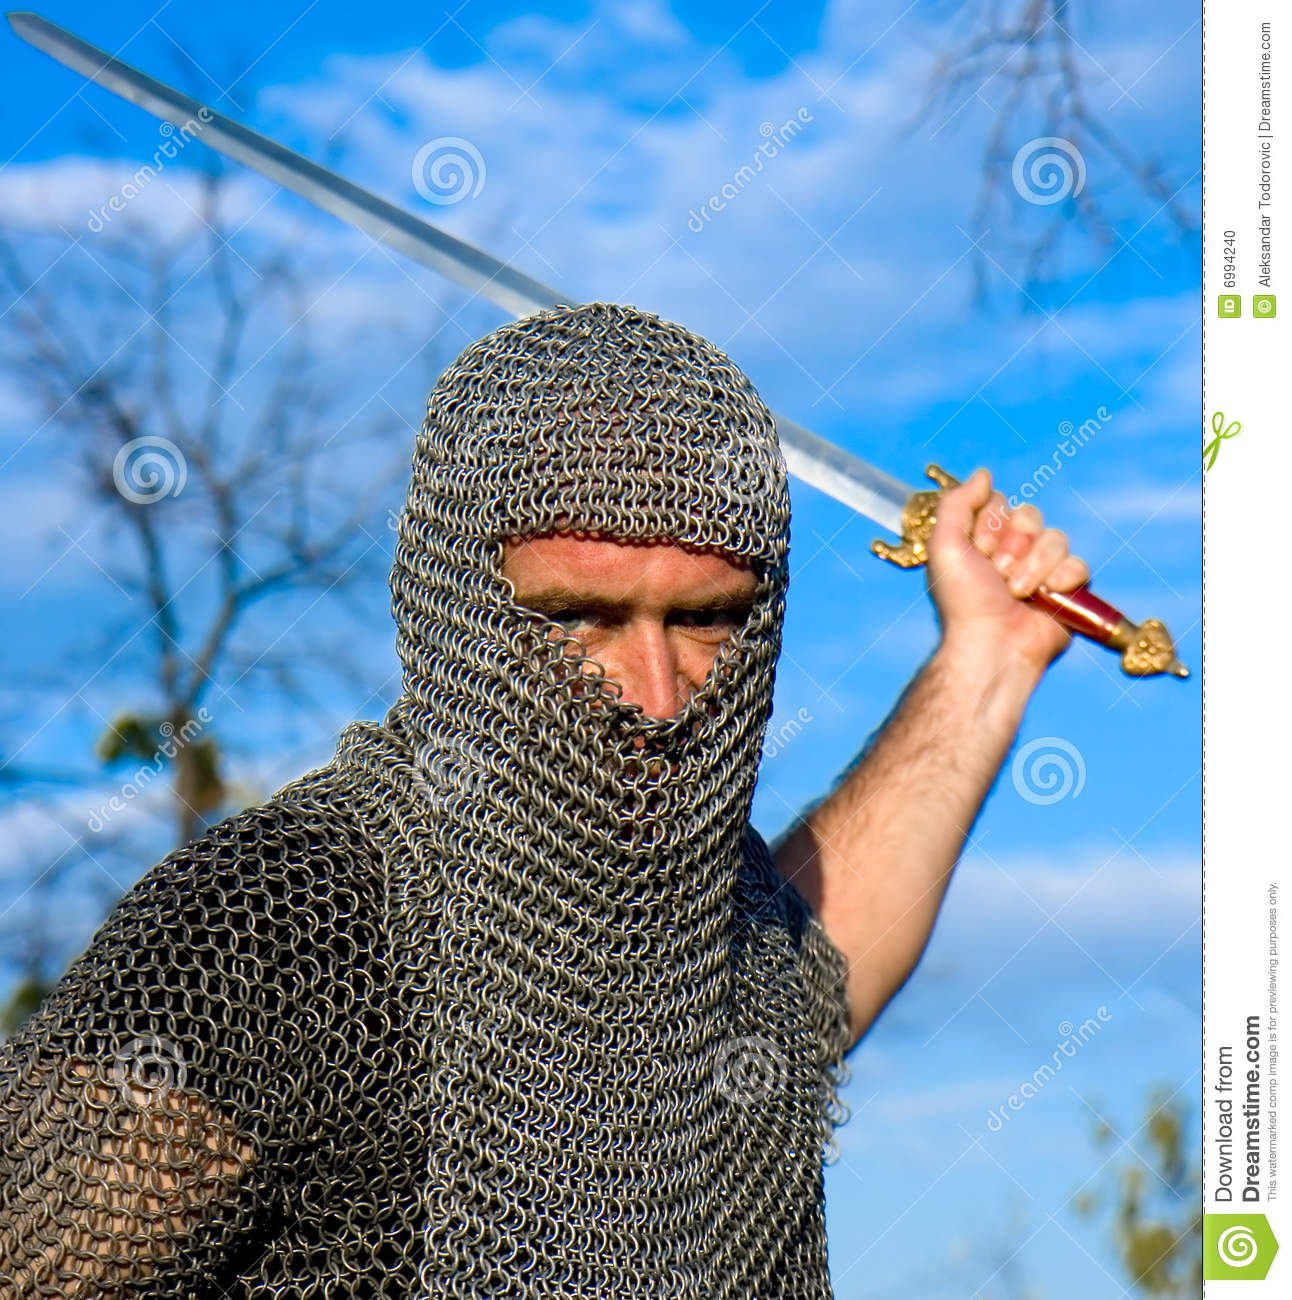 Knight Wearing Armour Stock Photo - Image: 6994240